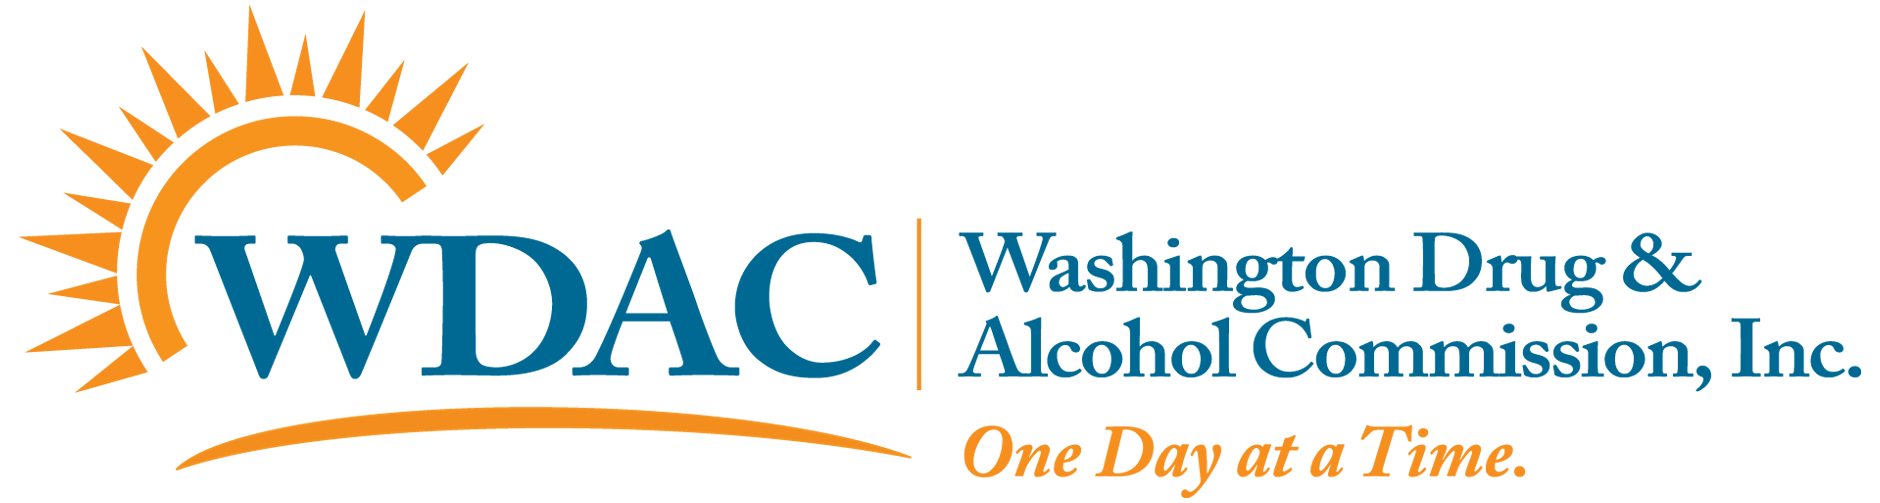 Washington Drug & Alcohol Commission, Inc.